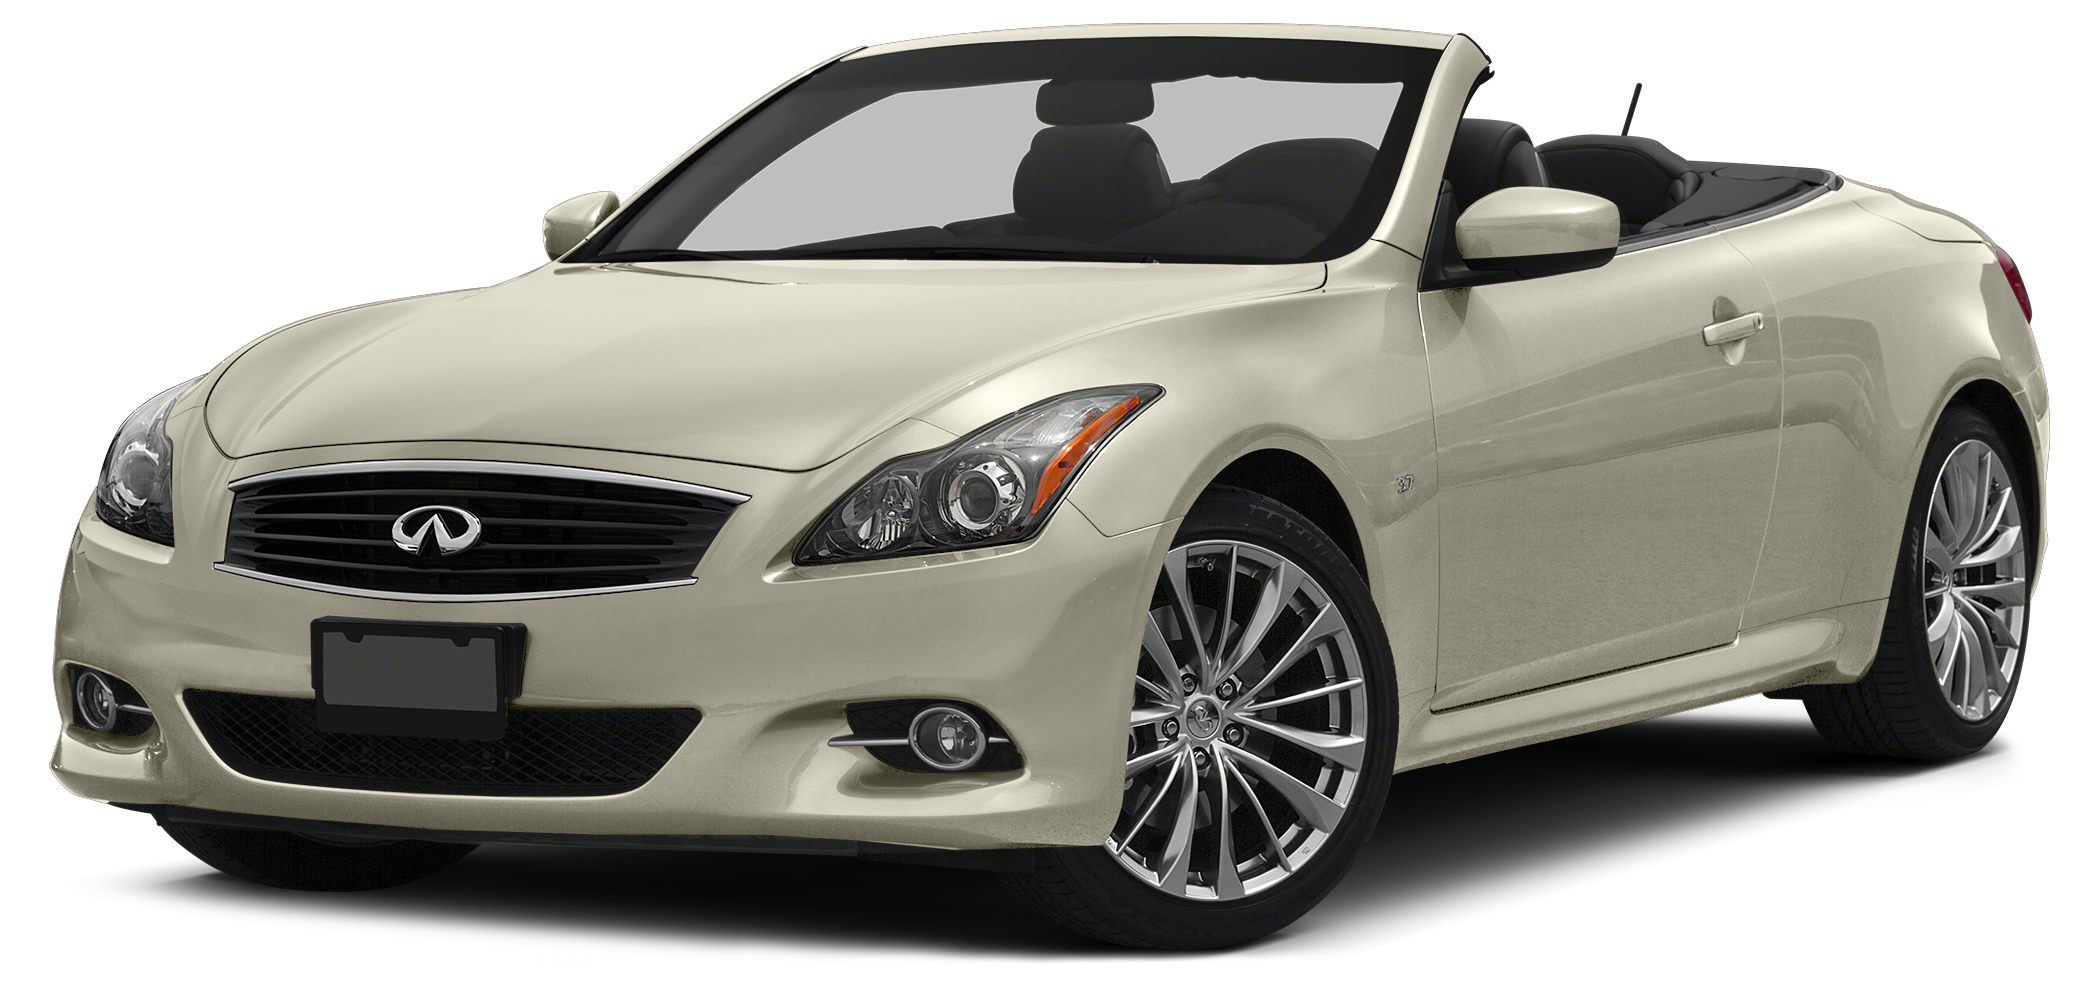 2015 Infiniti Q60 Base Optional equipment includes Premium Package Navigation Package Body Color